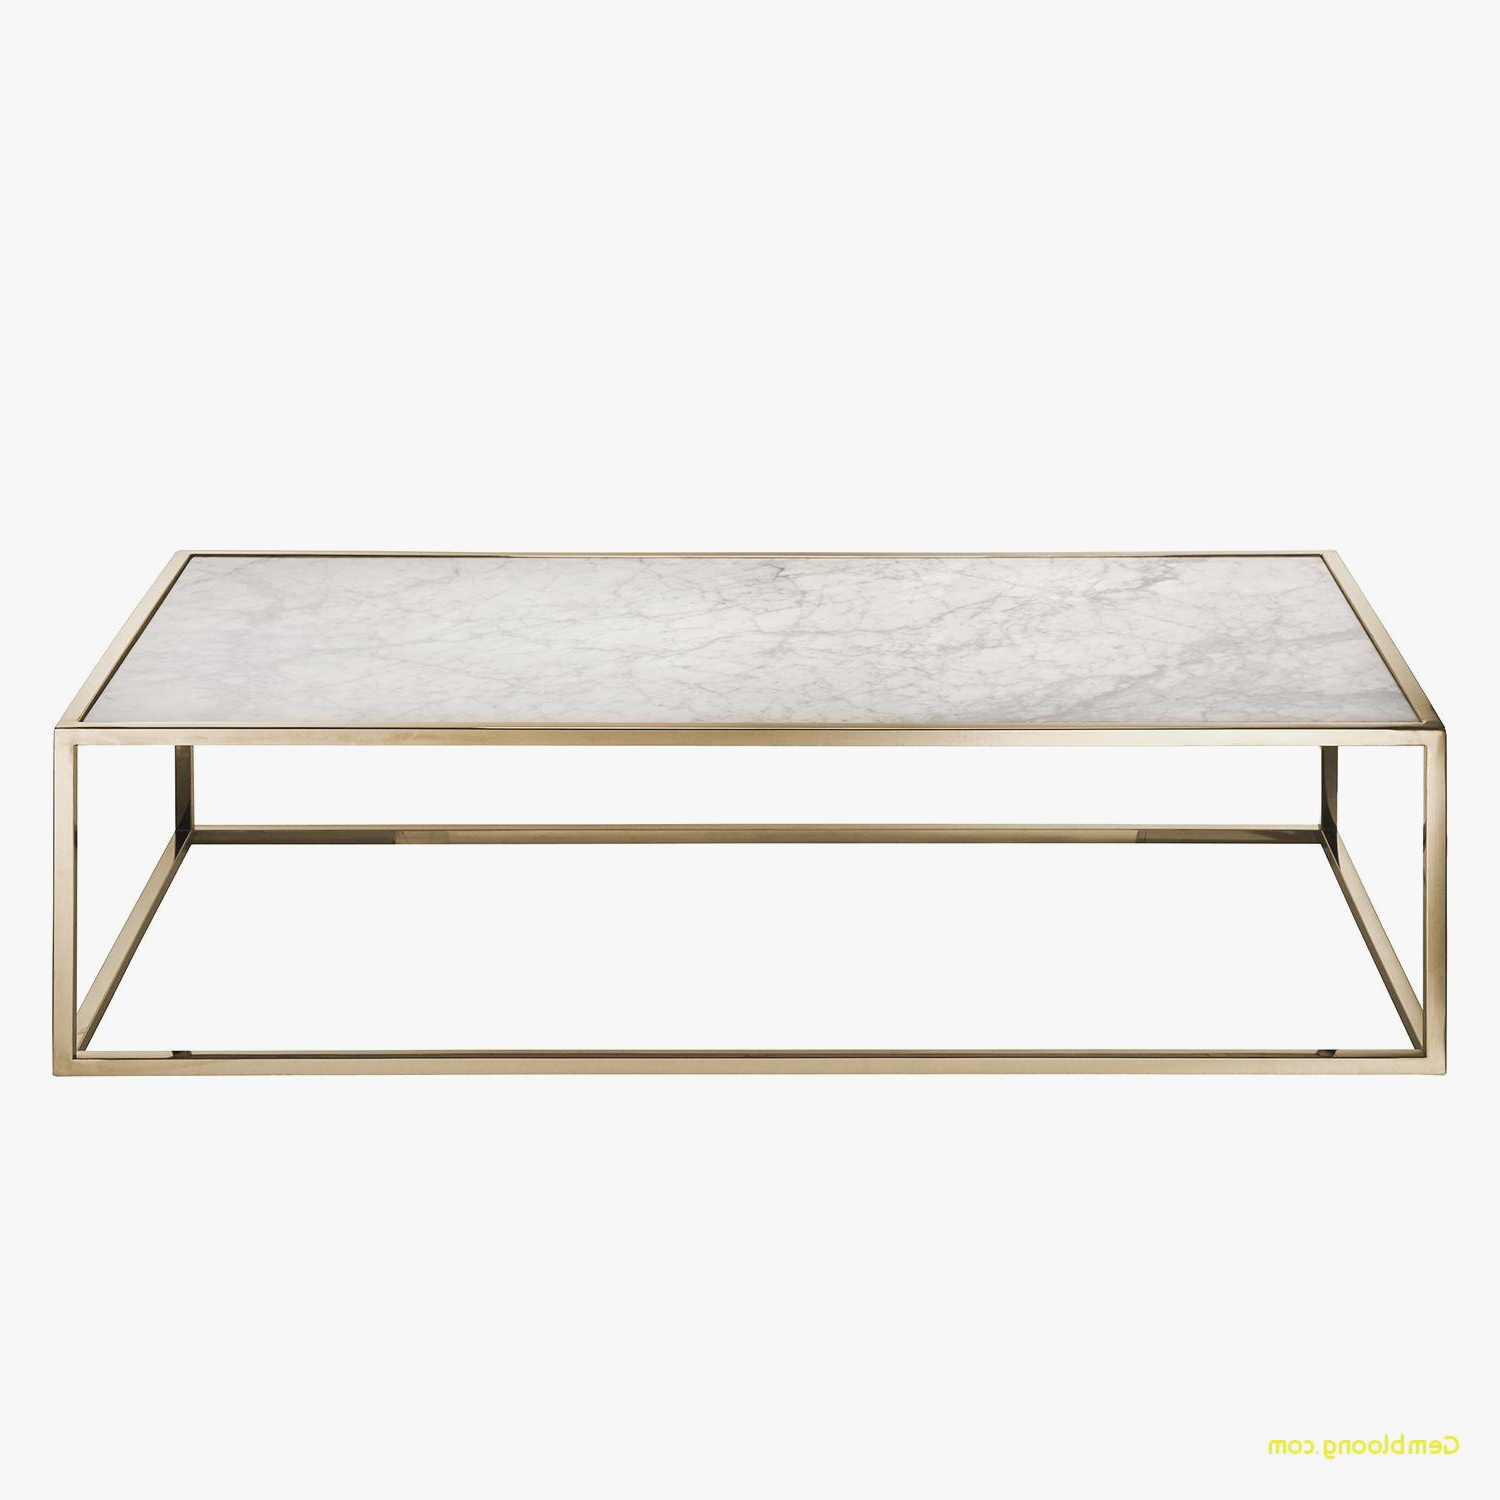 Preferred Cut Glass For Table Top Awesome 74 Fresh Contemporary Side Tables With Regard To Fresh Cut Side Tables (View 14 of 20)